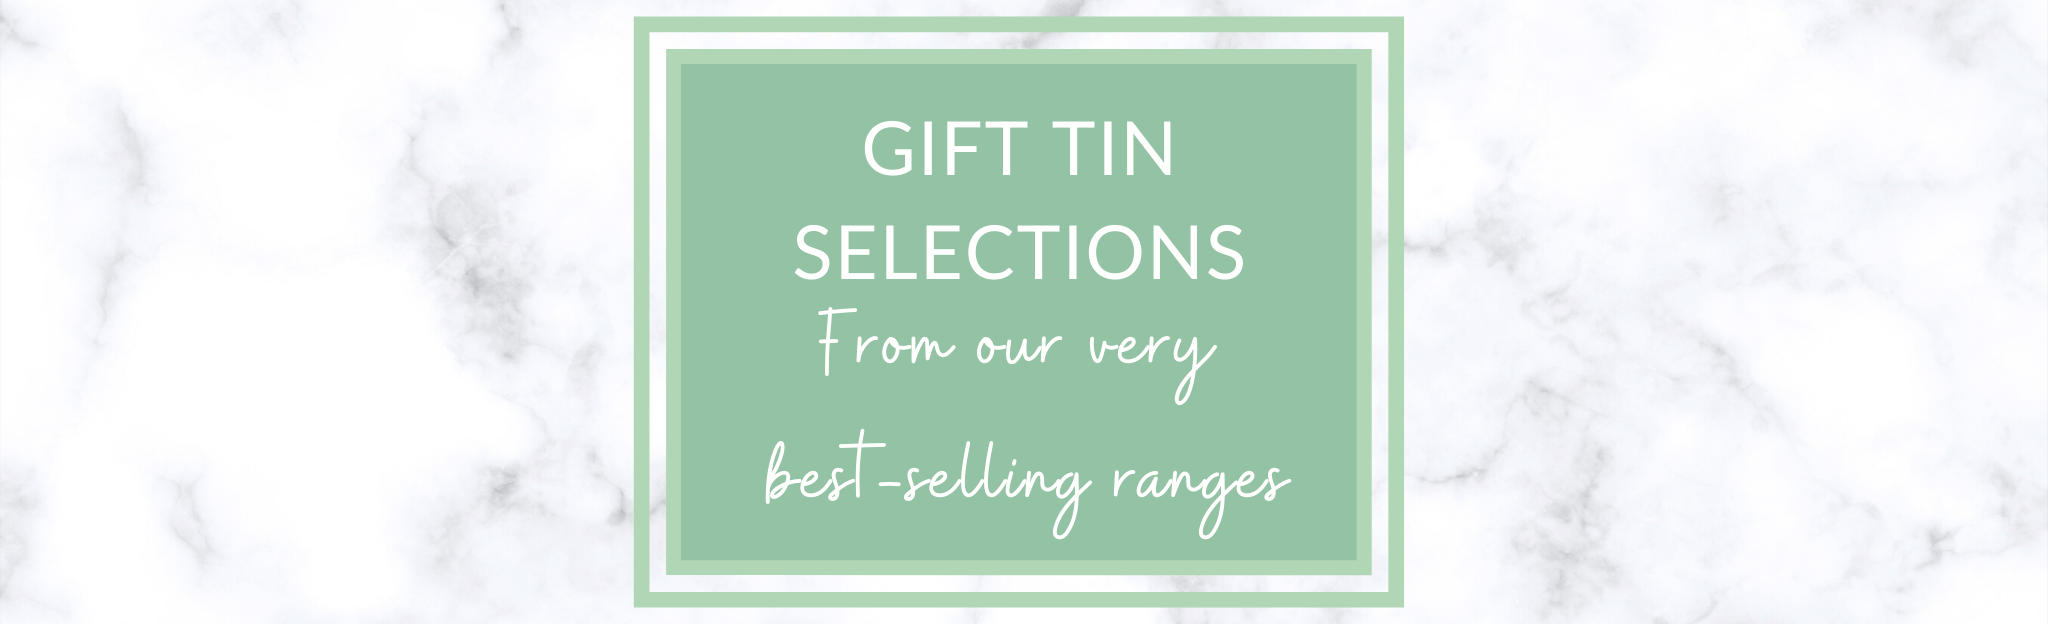 Gift tea tin selections